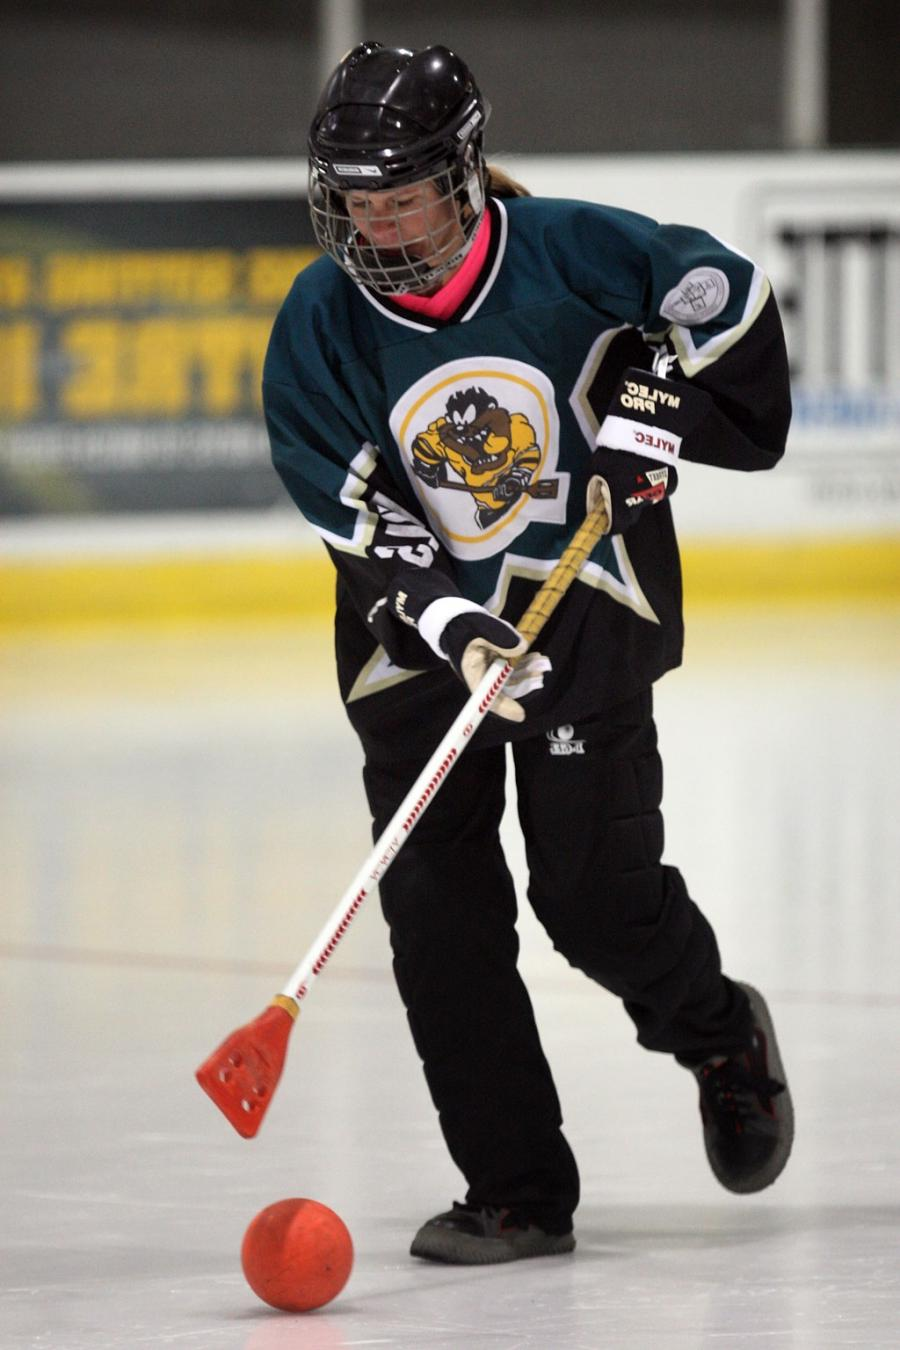 Kelly concentrates on carrying the ball down the ice. (NICK...